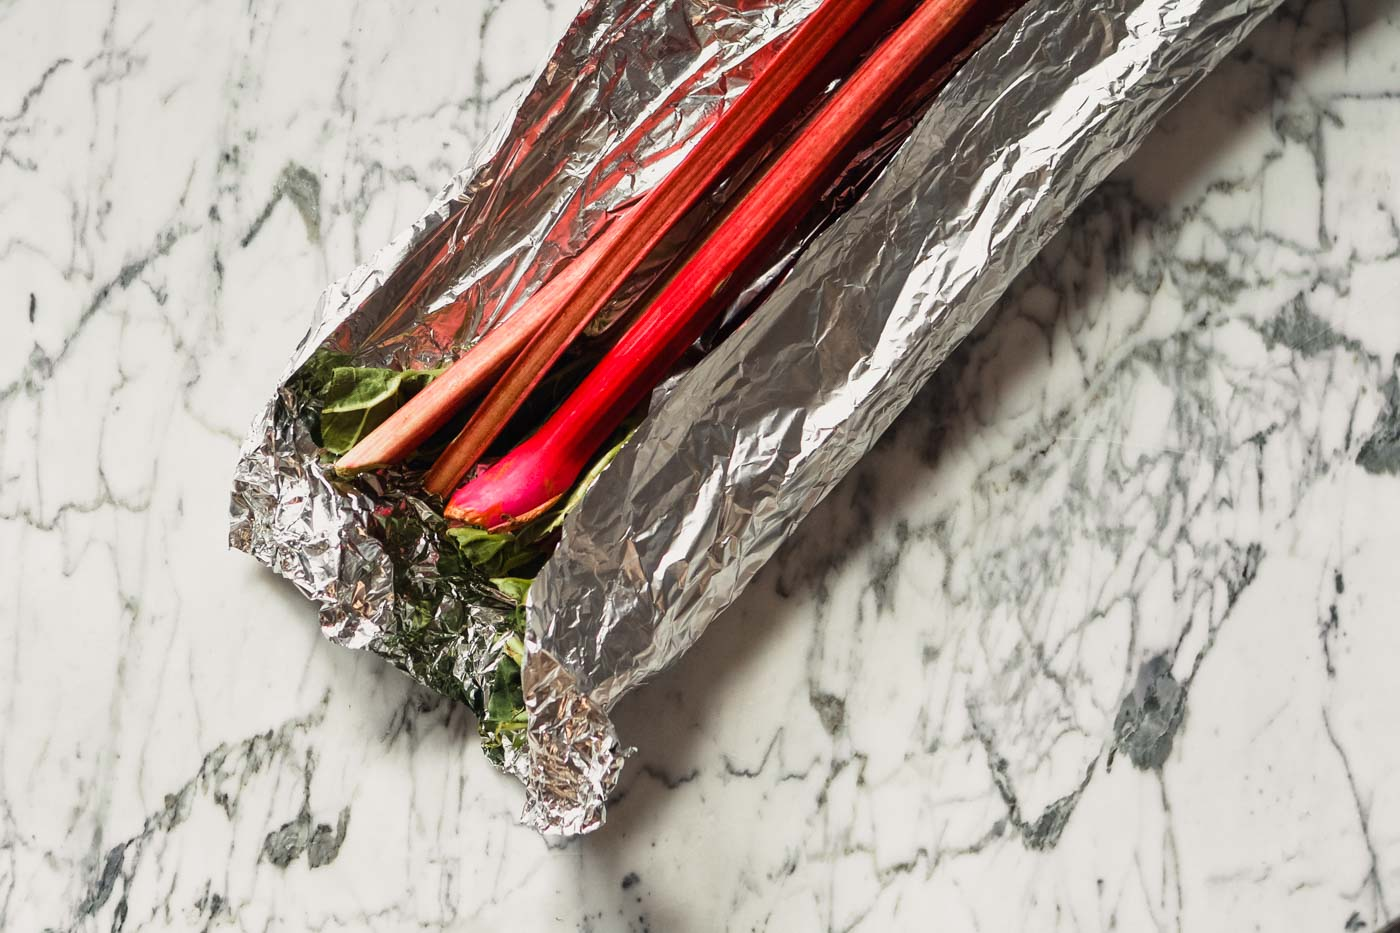 Photograph of stalks of rhubarb partially wrapped in foil